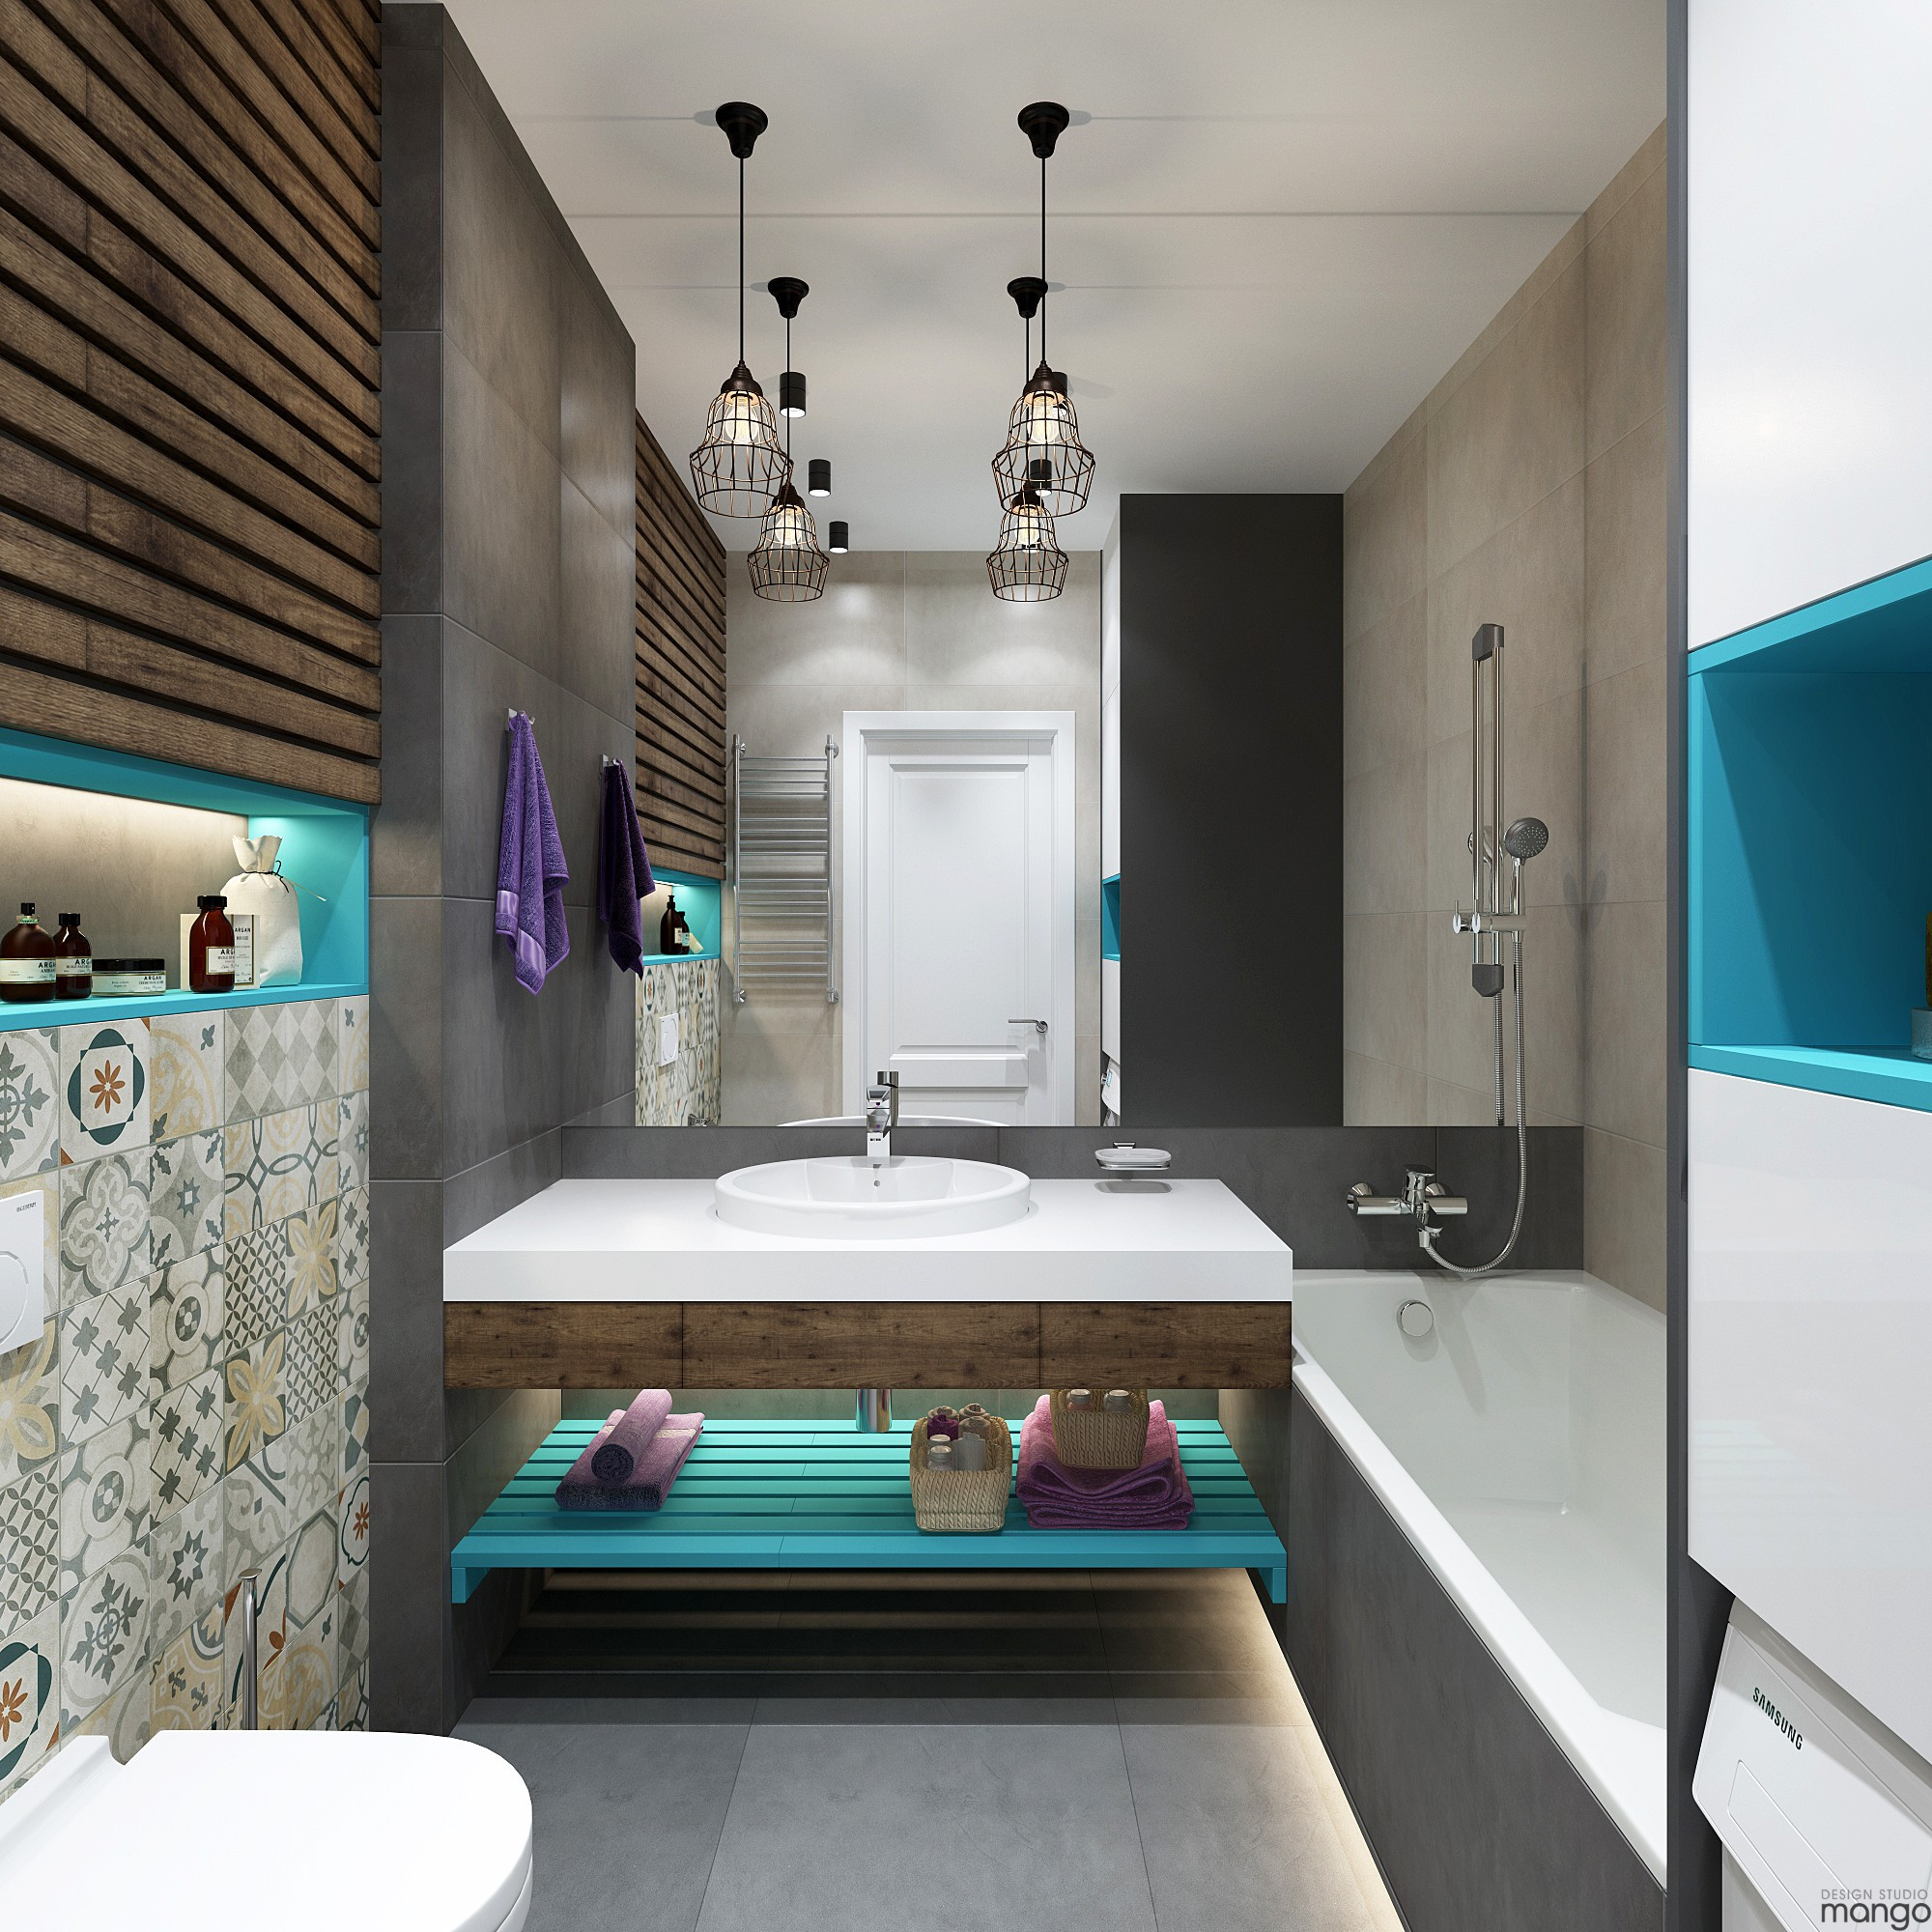 Compact Bathroom Design  Modern Small Bathroom Designs bined With Variety of